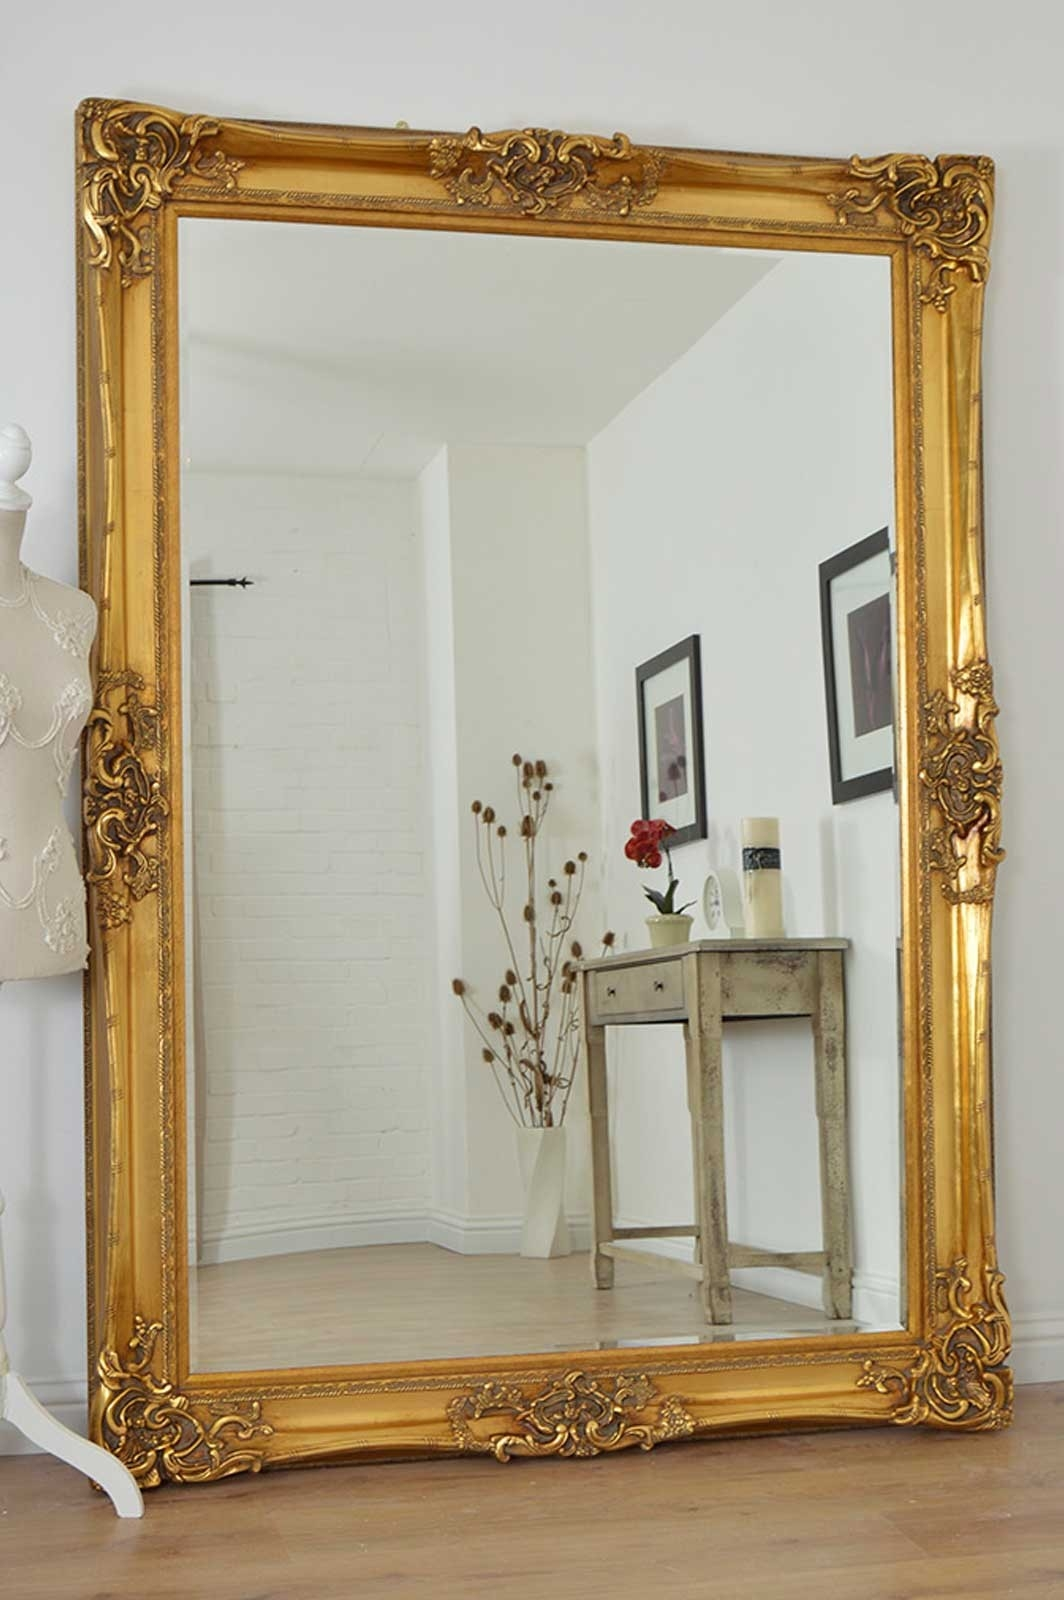 Large Gold Very Ornate Antique Design Wall Mirror 7ft X 5ft 213cm Throughout Brass Mirrors For Sale (Image 9 of 15)